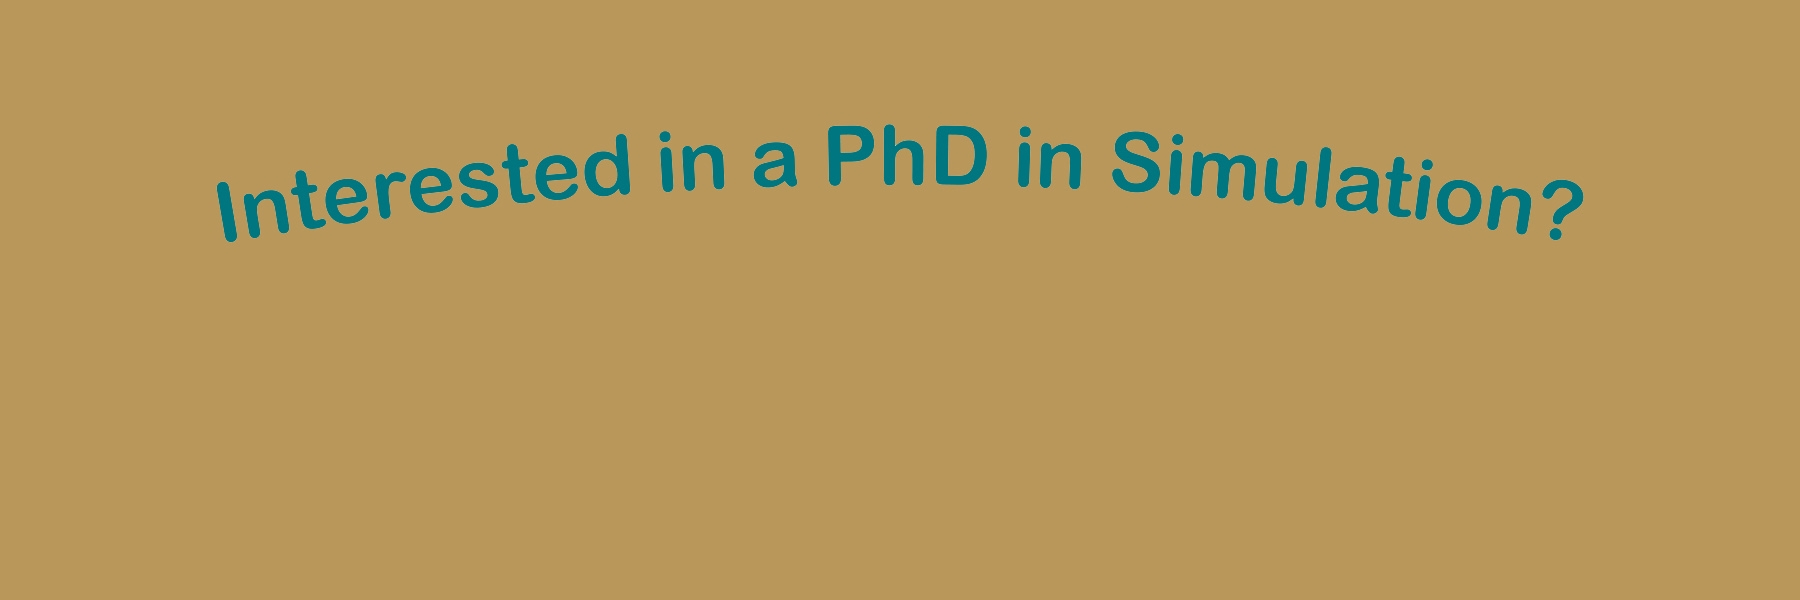 """Image asks the user """"interested in a PhD in Simulation?"""""""